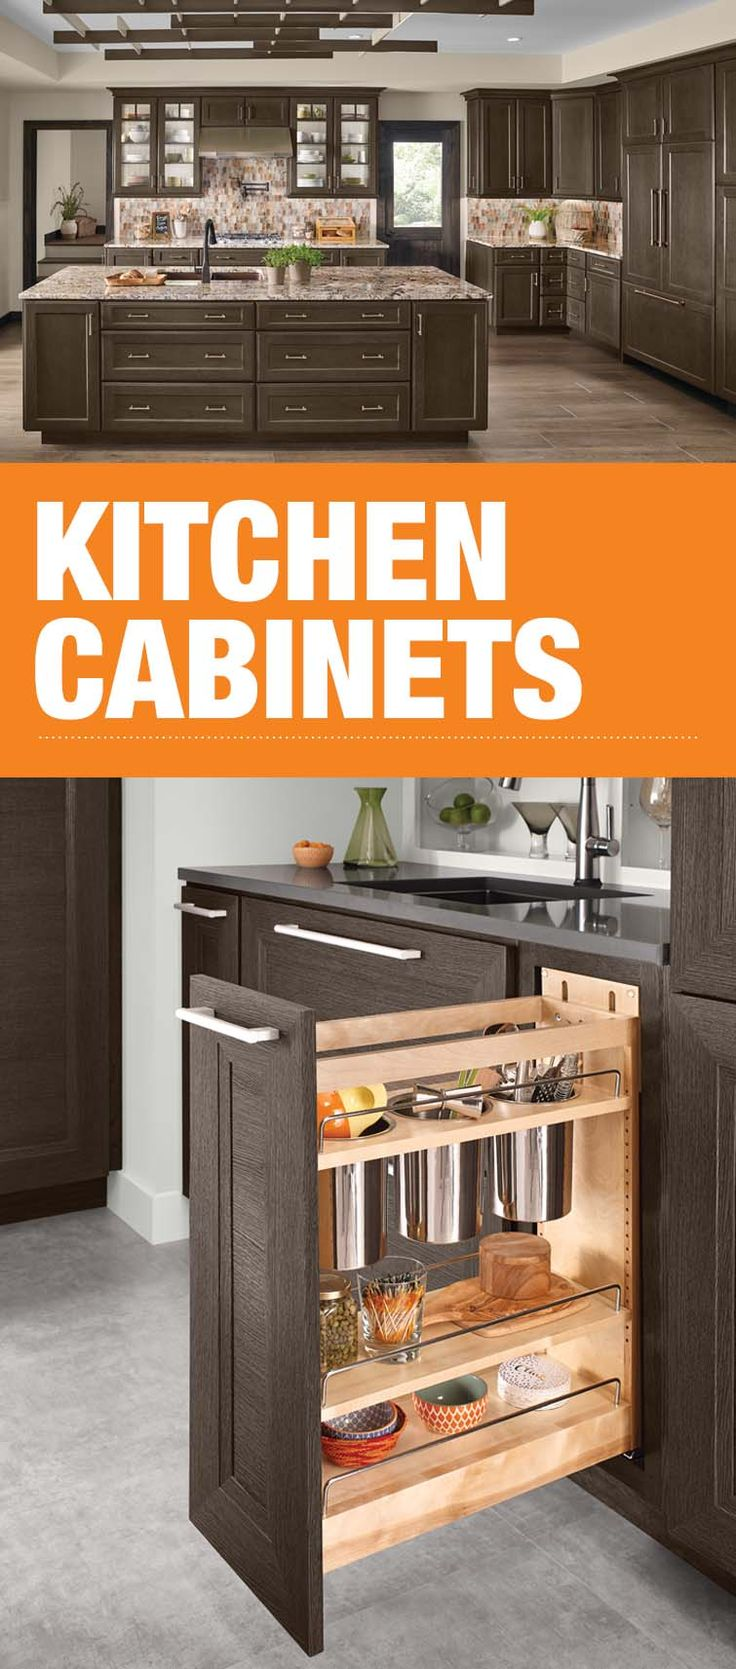 Create your ultimate kitchen by adding beauty, storage and functionality with custom cabinets. Base Utensil Pull-Out creates space for easy to find utensils in a limited space.